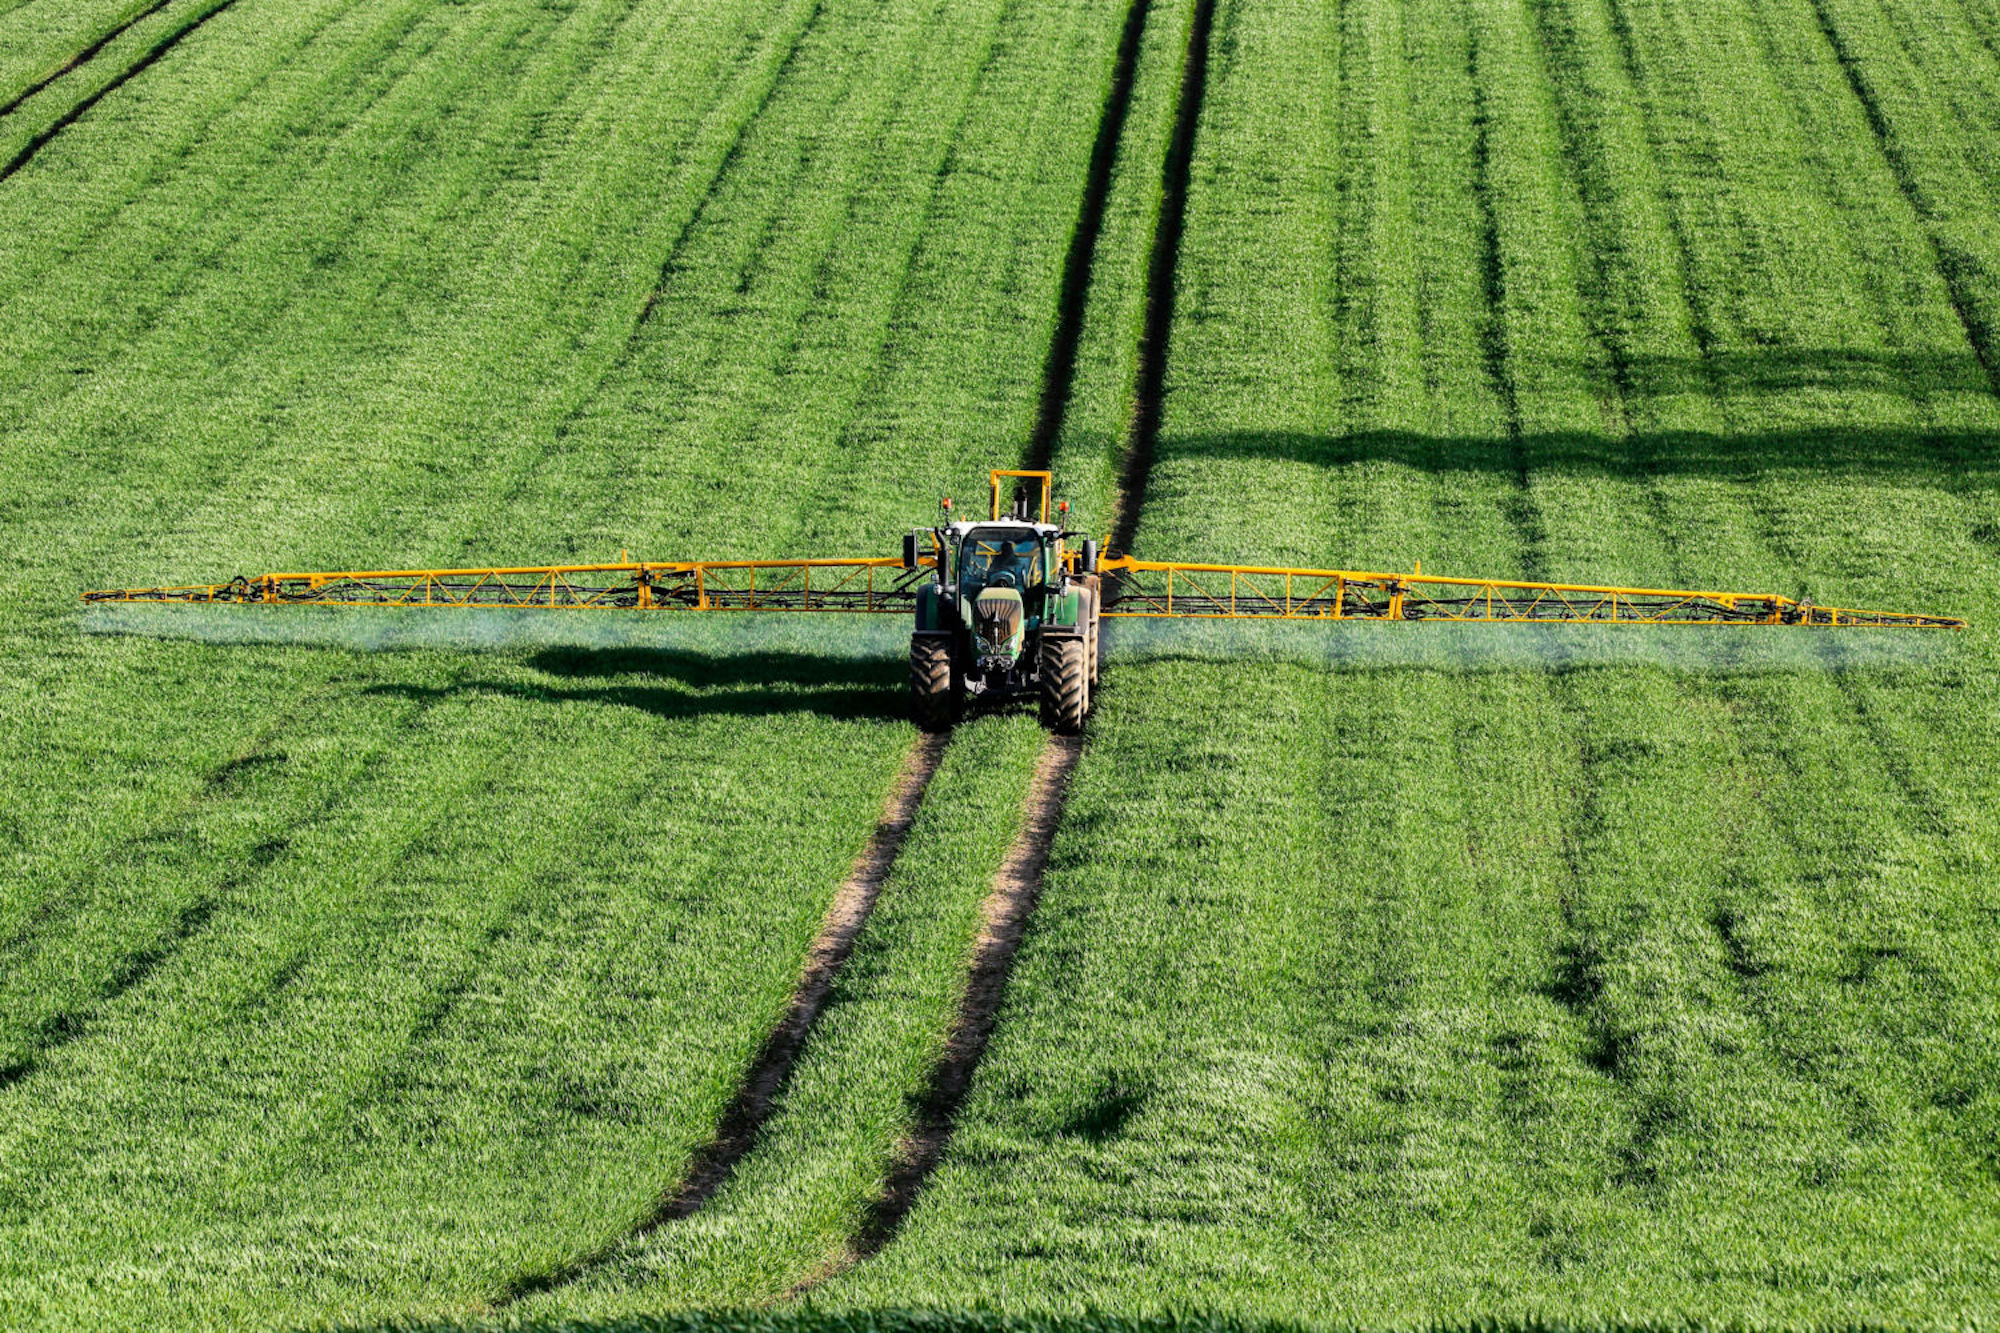 On a sunny day, a huge tractor sprays fertilizer on a green wheat field in England